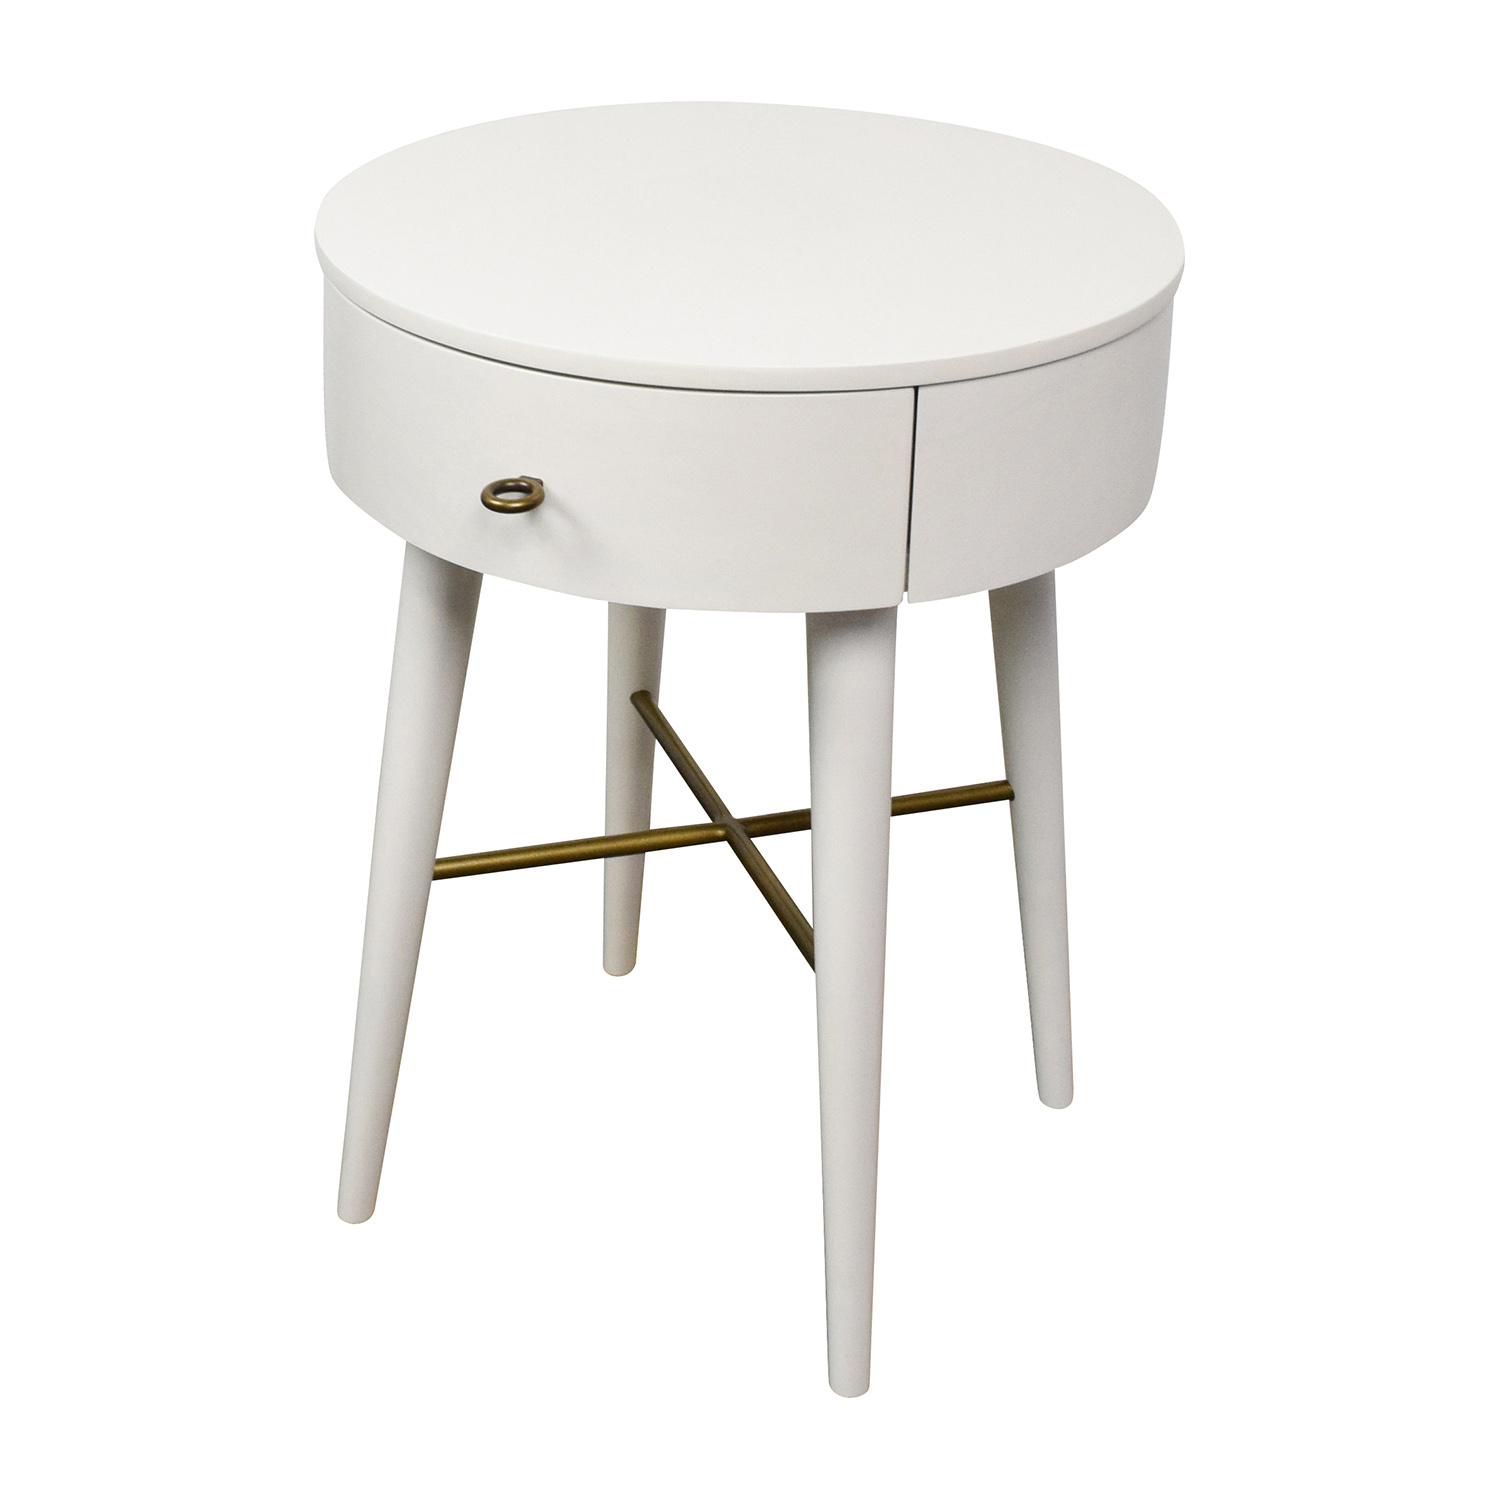 top superb round nightstand with drawer narrow accent table black bedside small end design pier one glass tops and metal coffee entryway storage white marble silver pet clothes